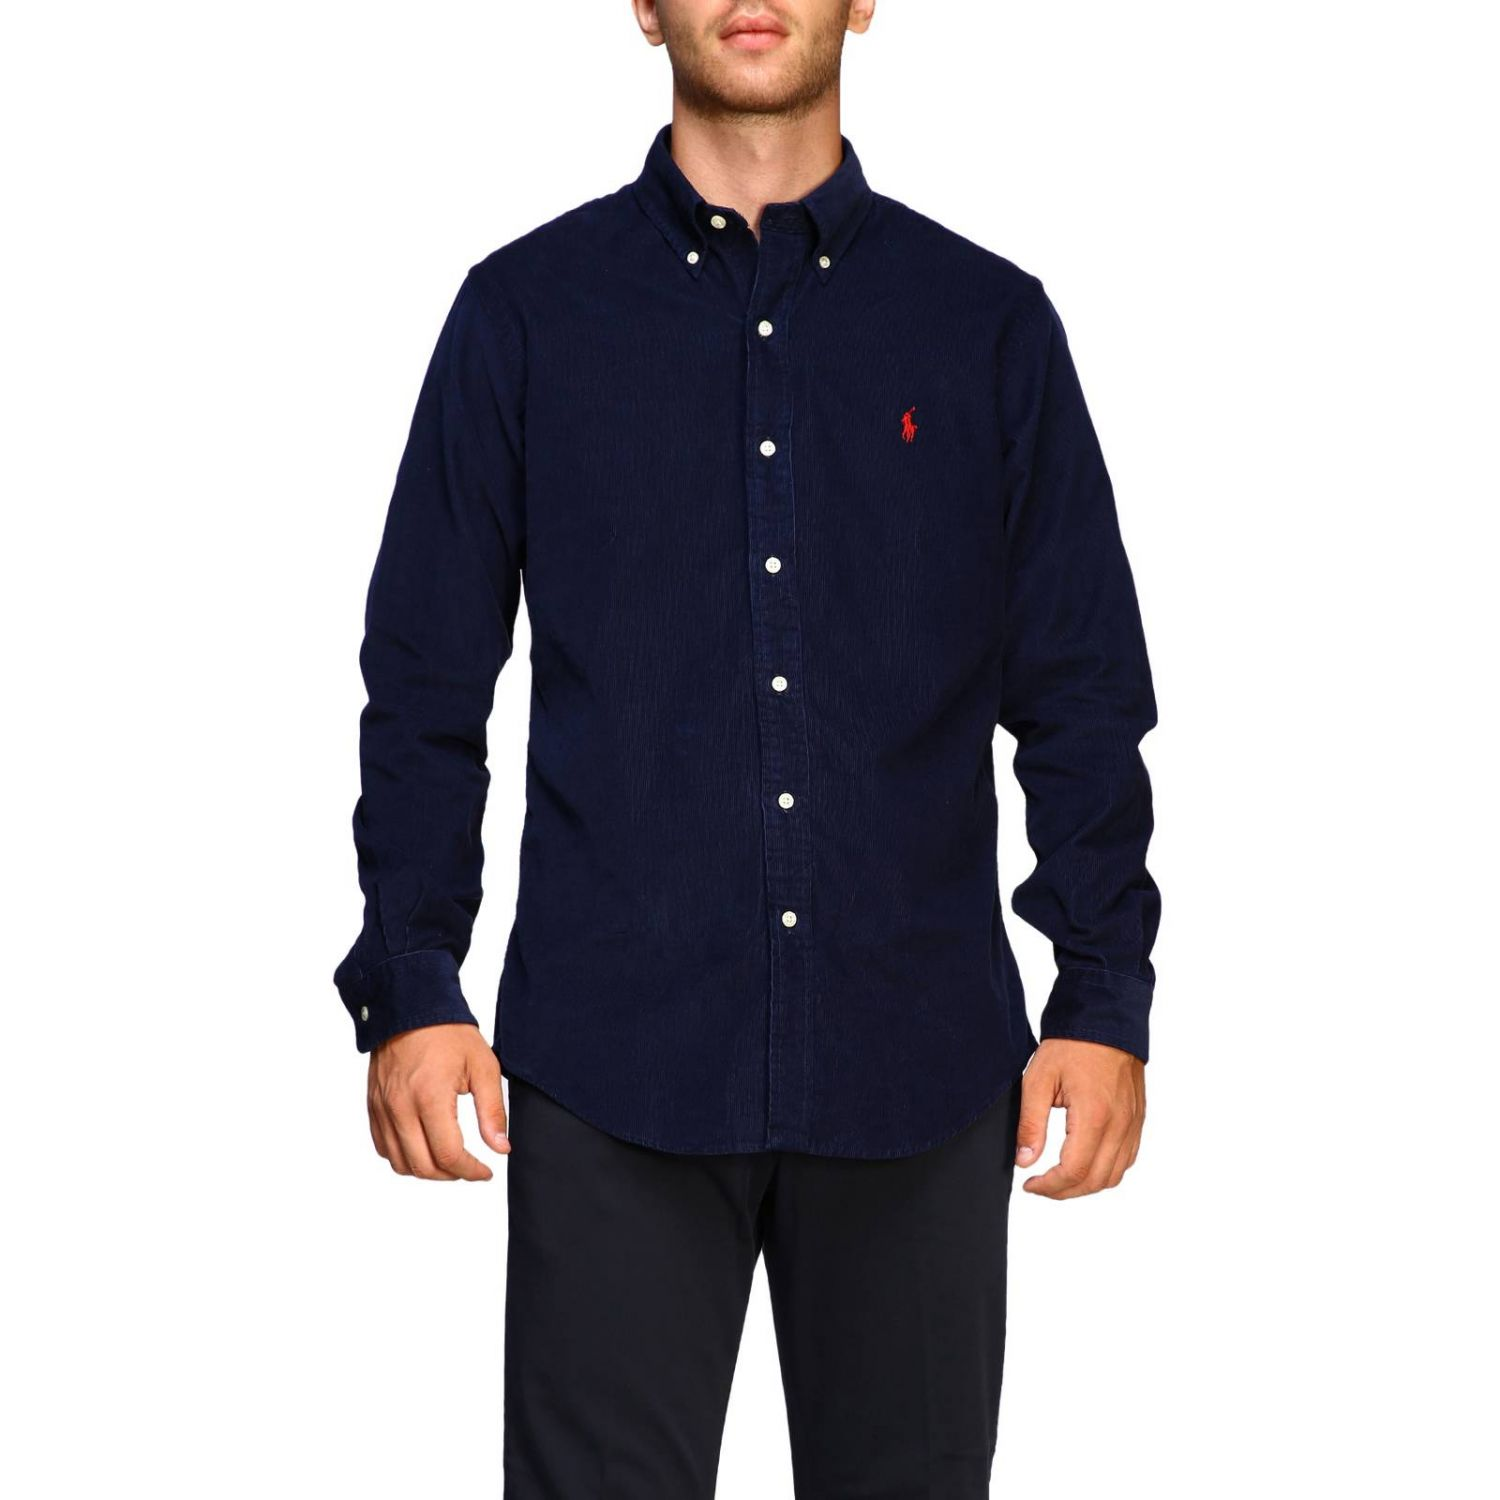 Custom-fit ribbed shirt with button-down collar and Polo Ralph Lauren logo blue 1